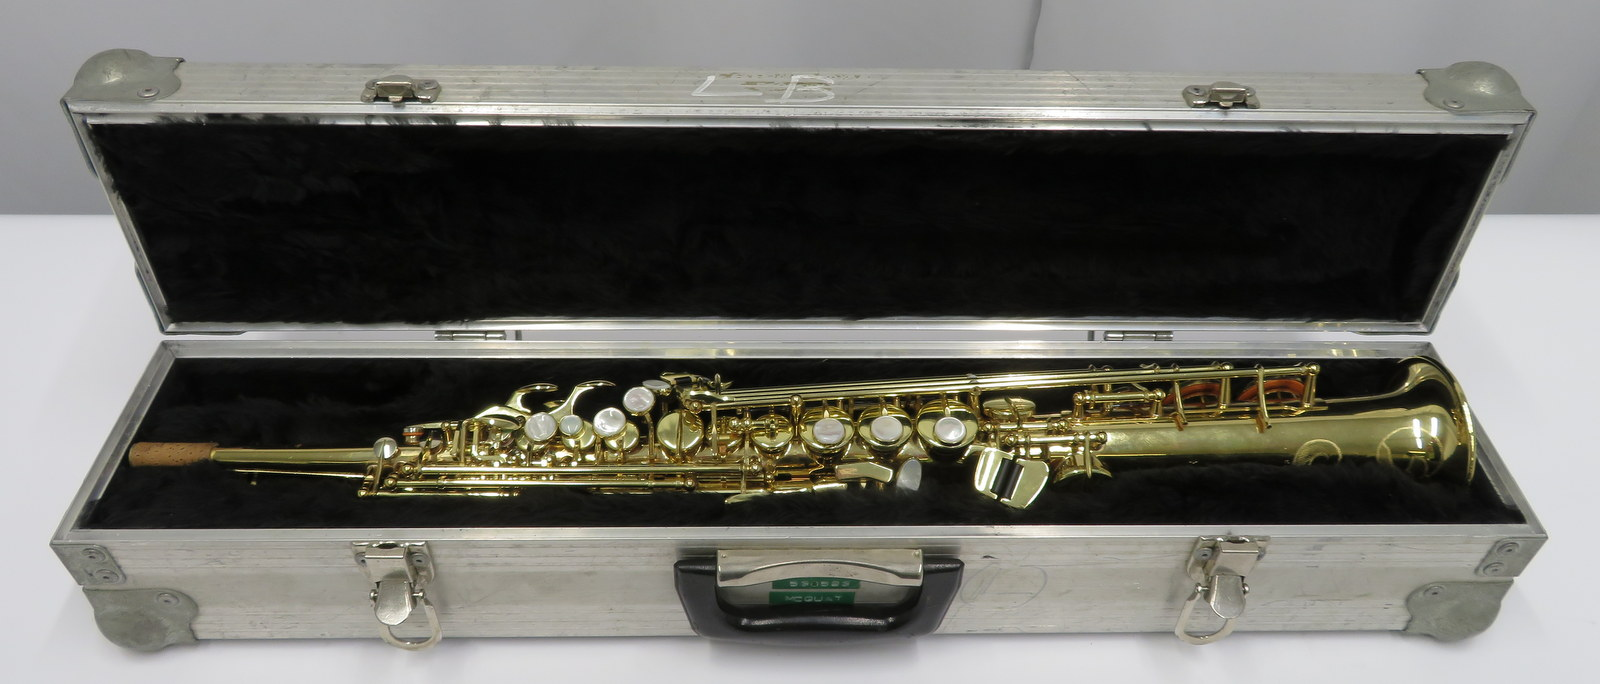 Lot 4 - Henri Selmer 80 super action series 2 soprano saxophone with case. Serial number: N.530523.